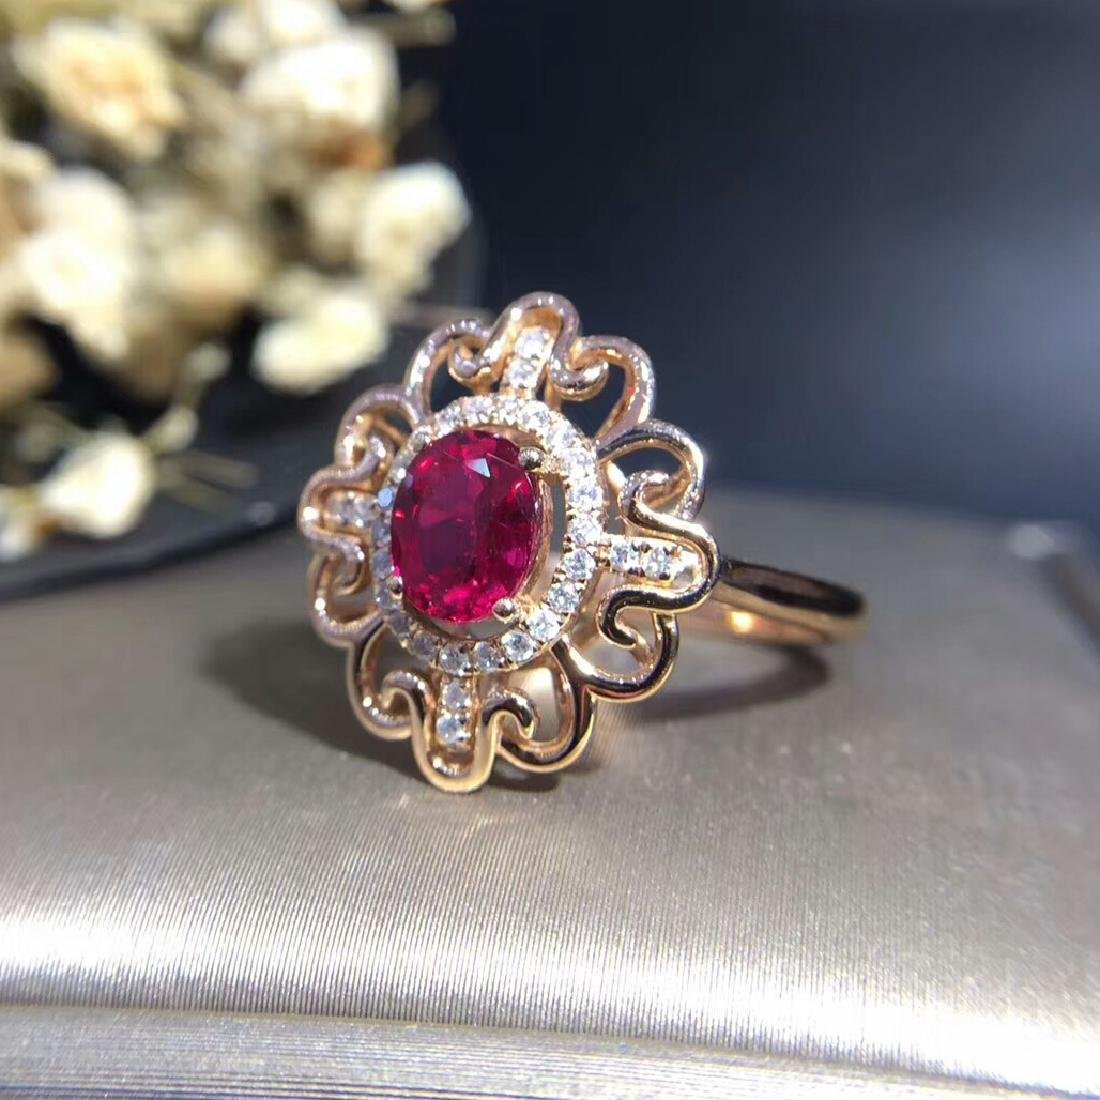 0.95ct Ruby Ring in 18kt white Gold - 2